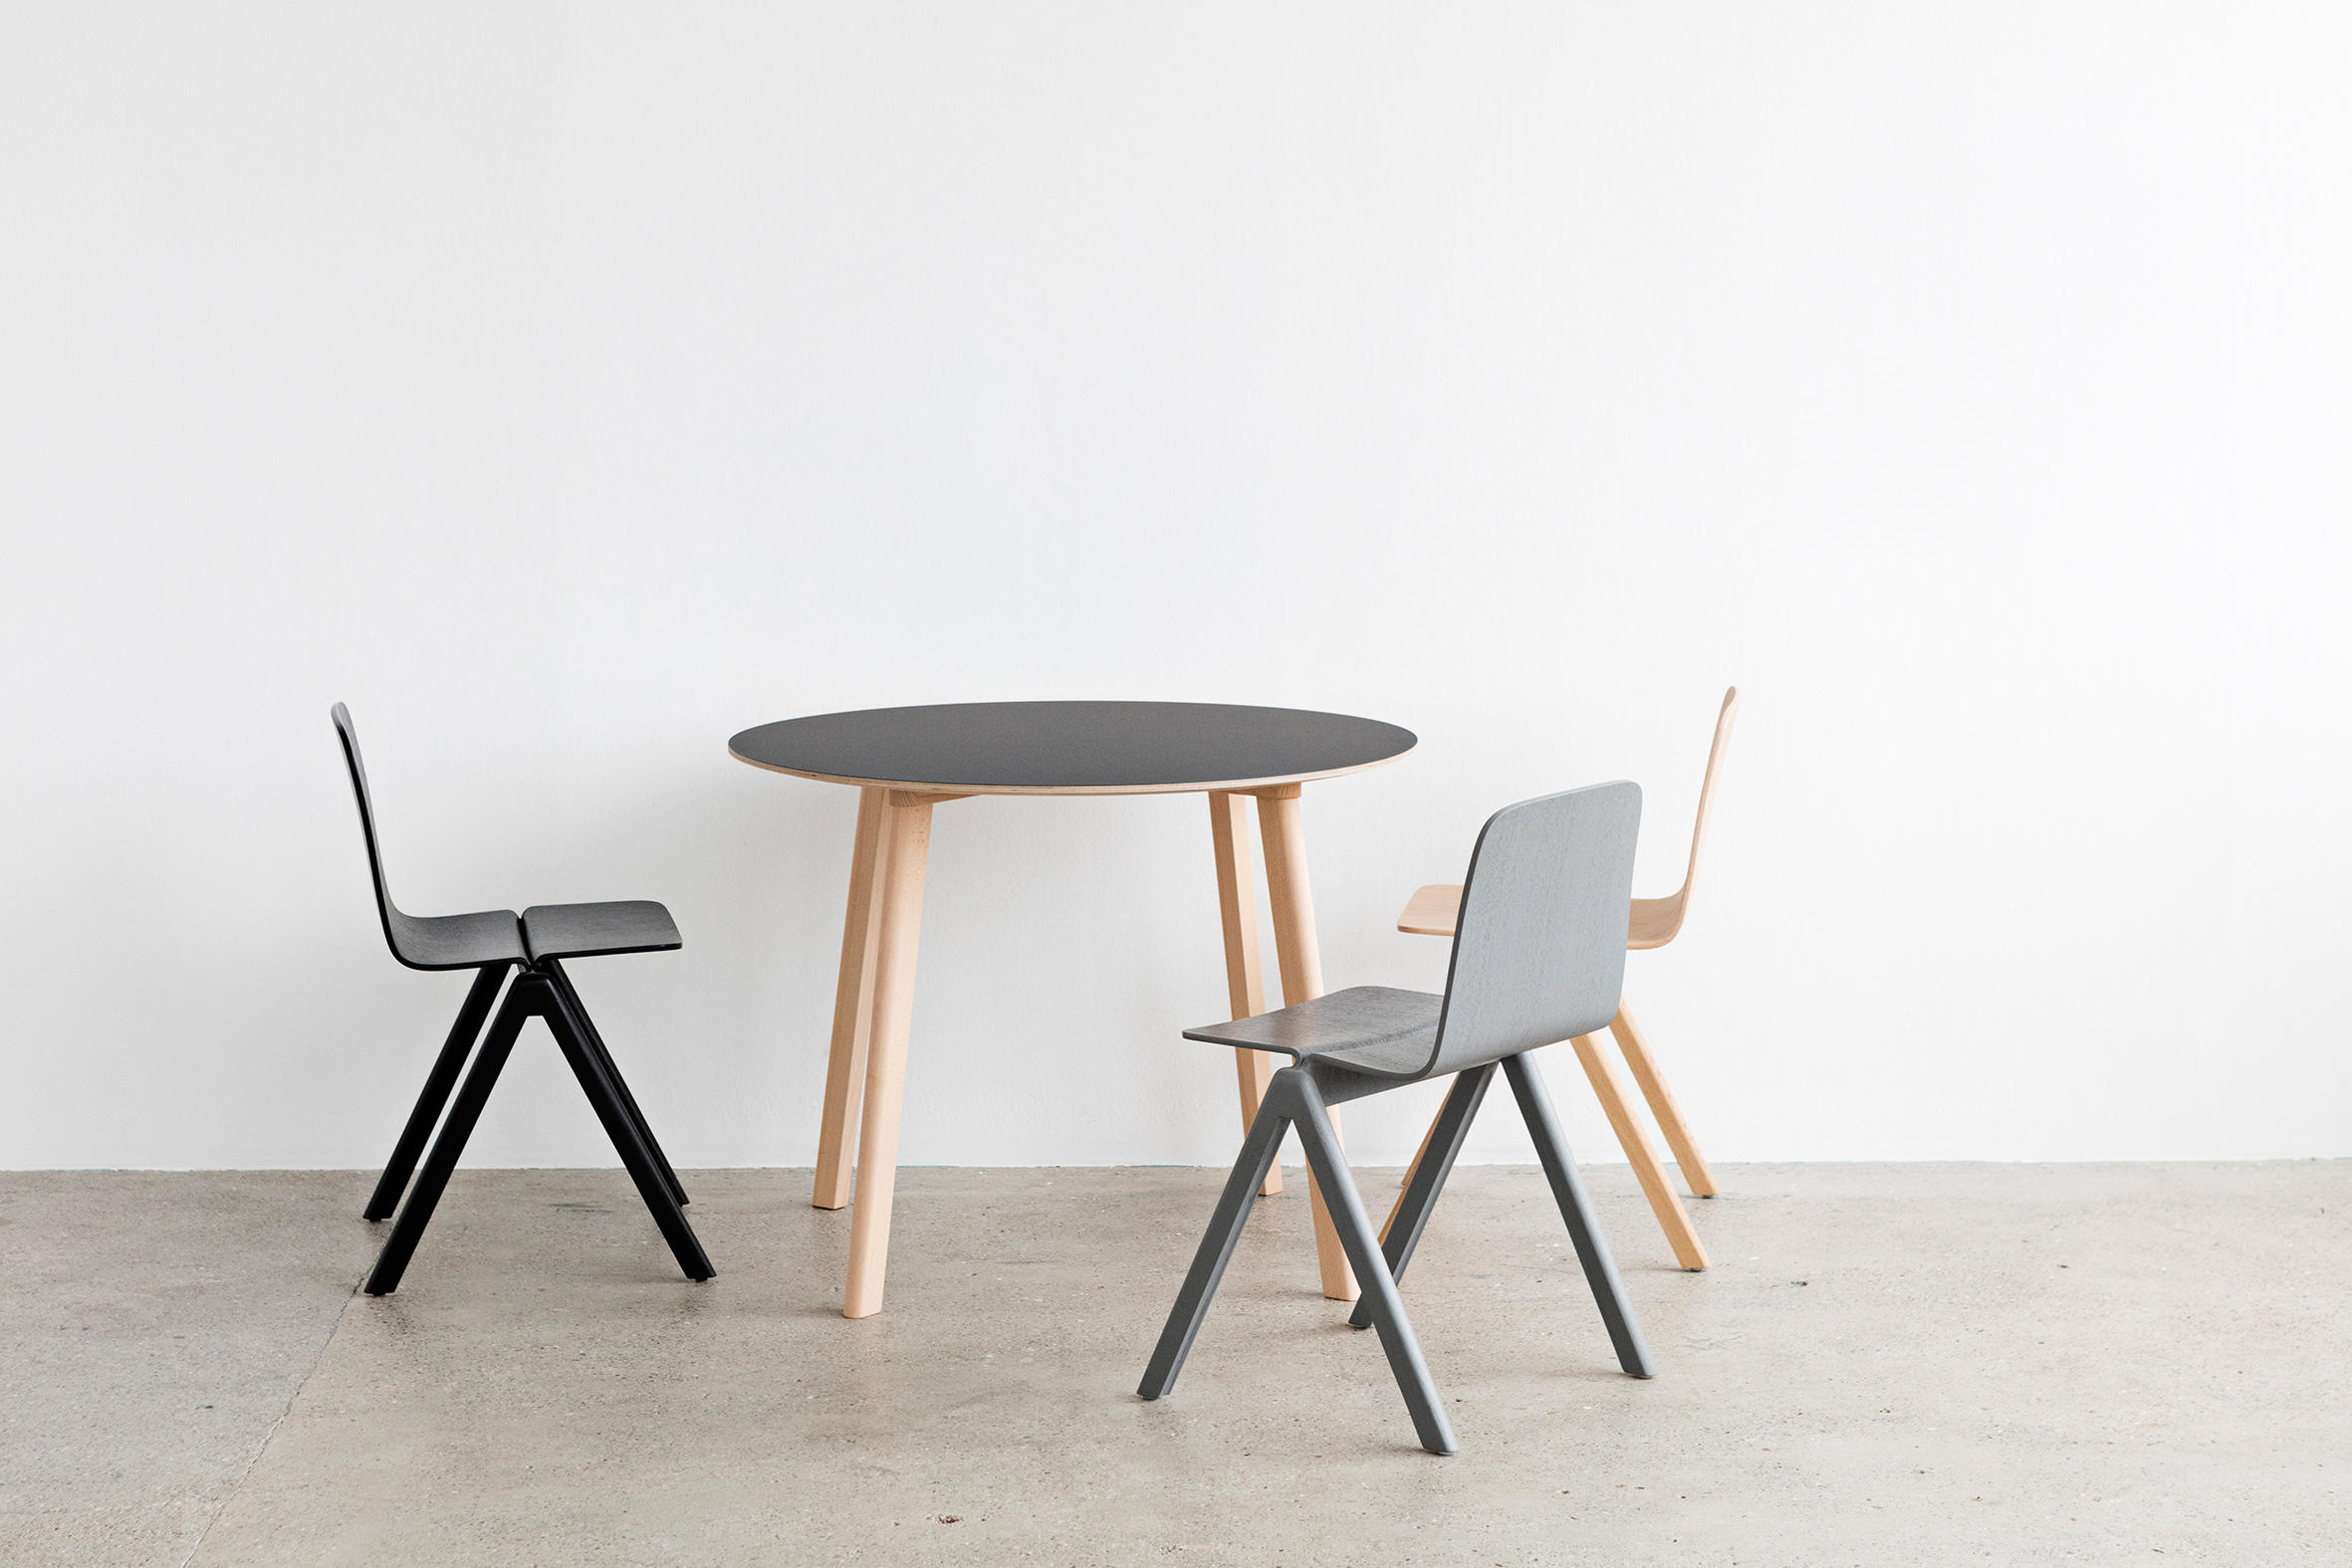 Copenhague Deux Table Cph210 Dining Tables From Hay